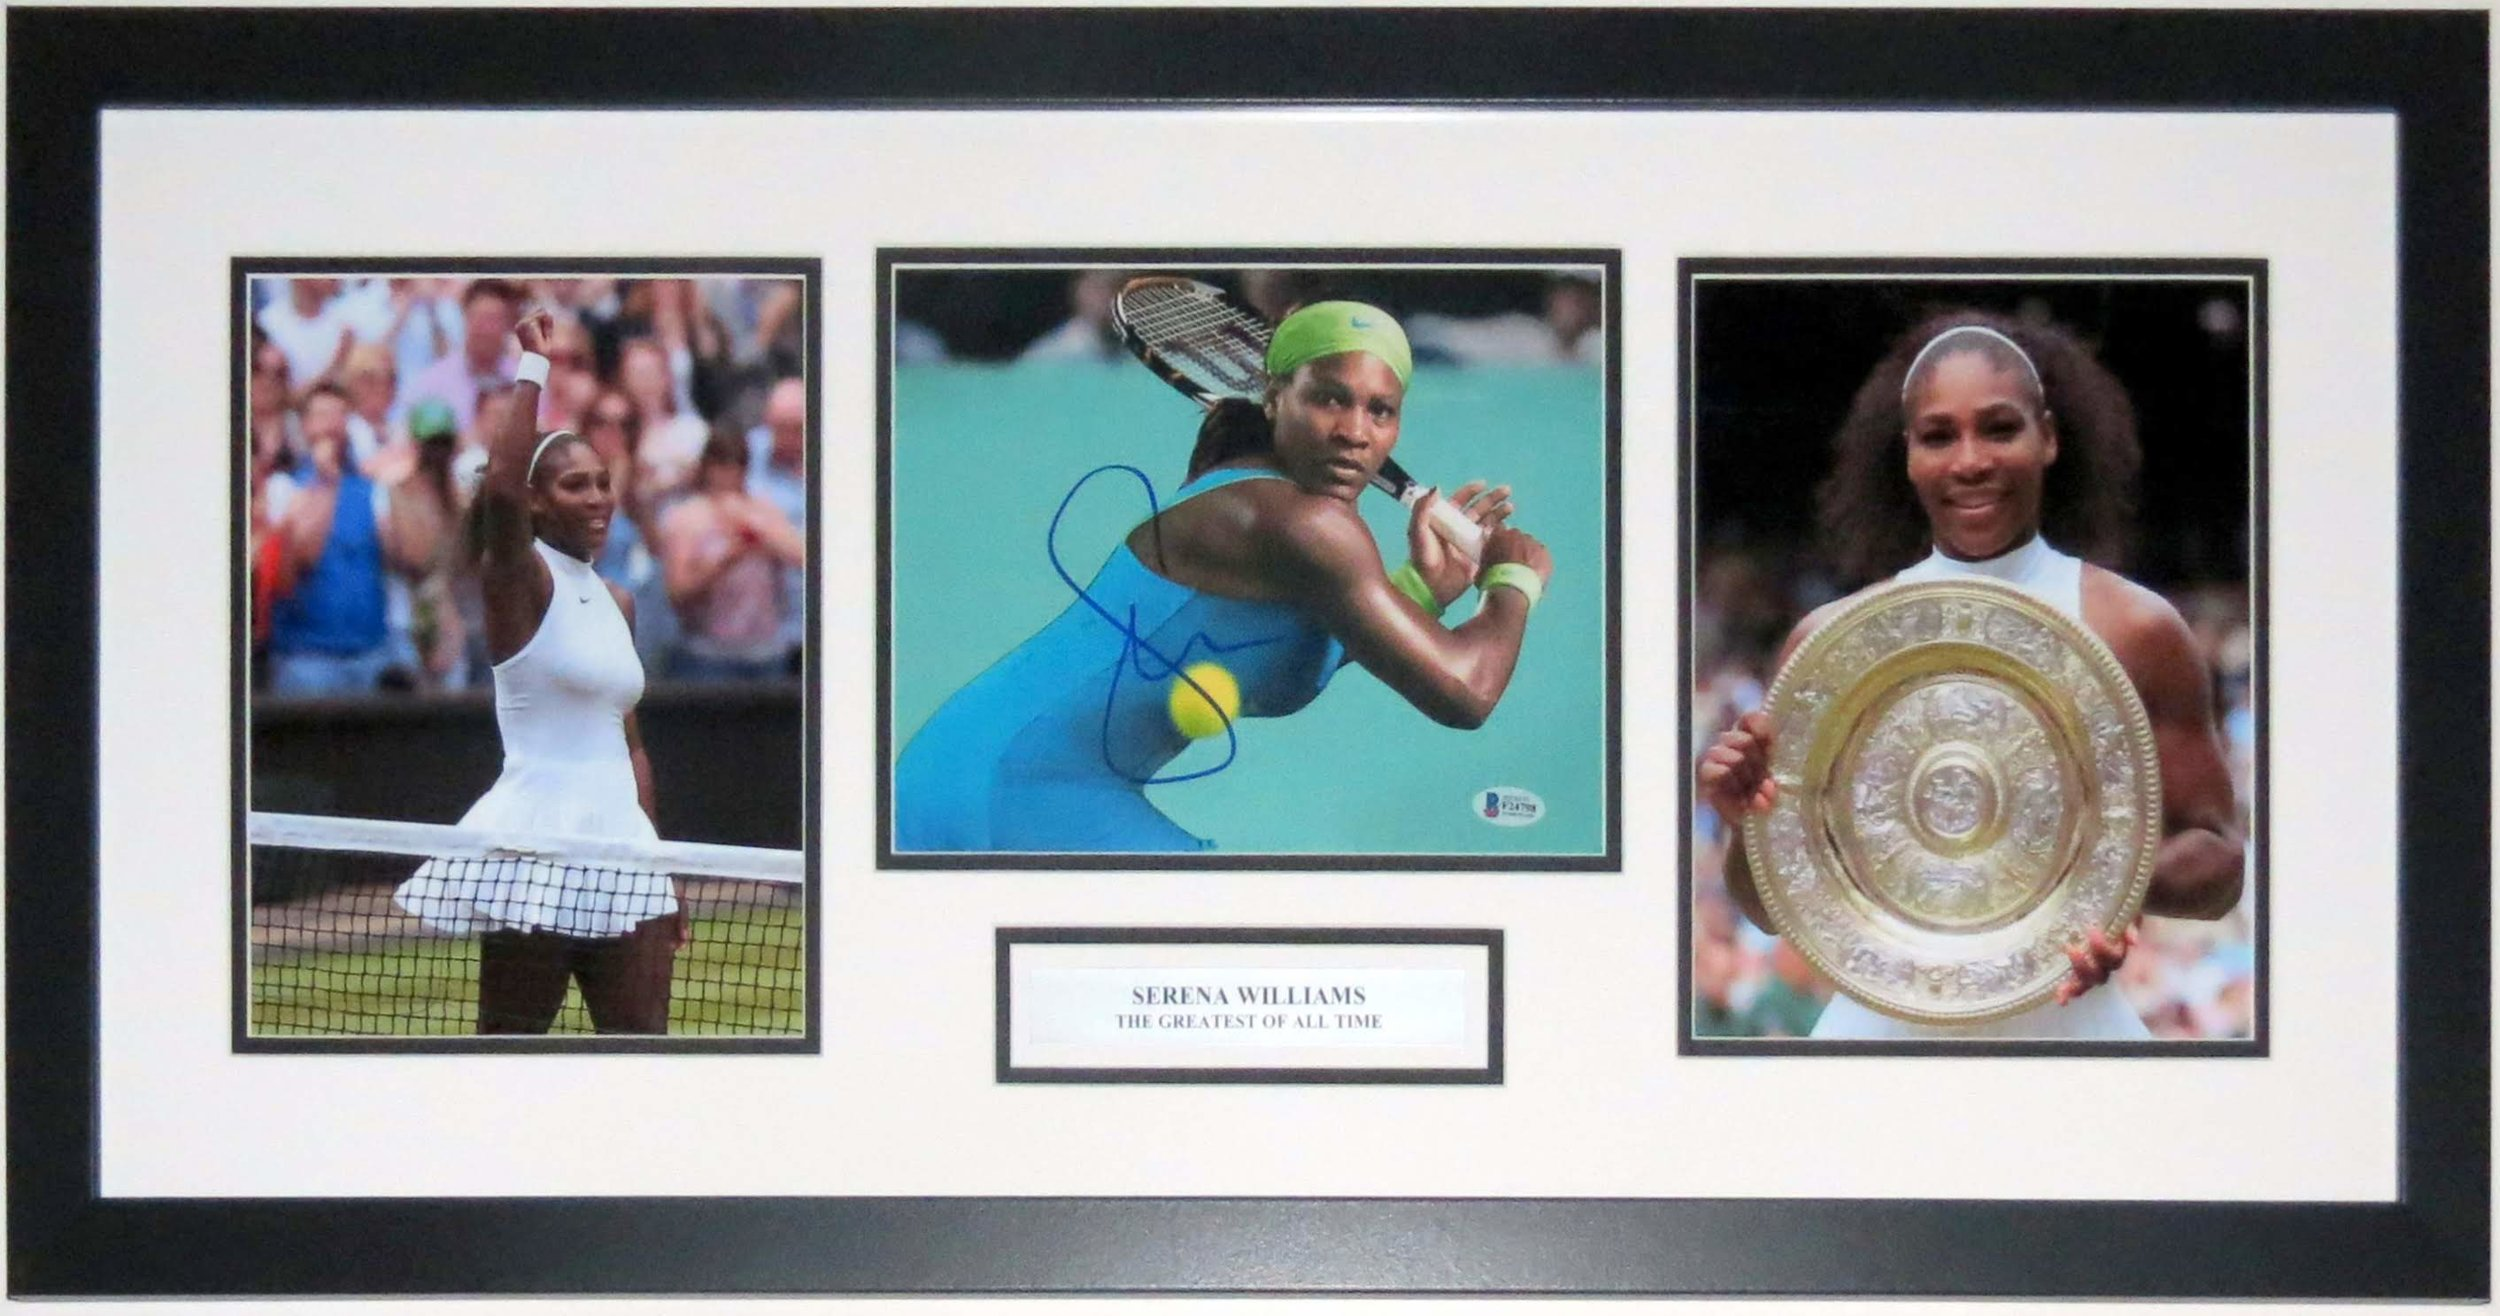 Serena Williams Signed Wimbledon 3 8x10 Photo Set - Beckett Authentication Services COA - Professionally Framed & Plate